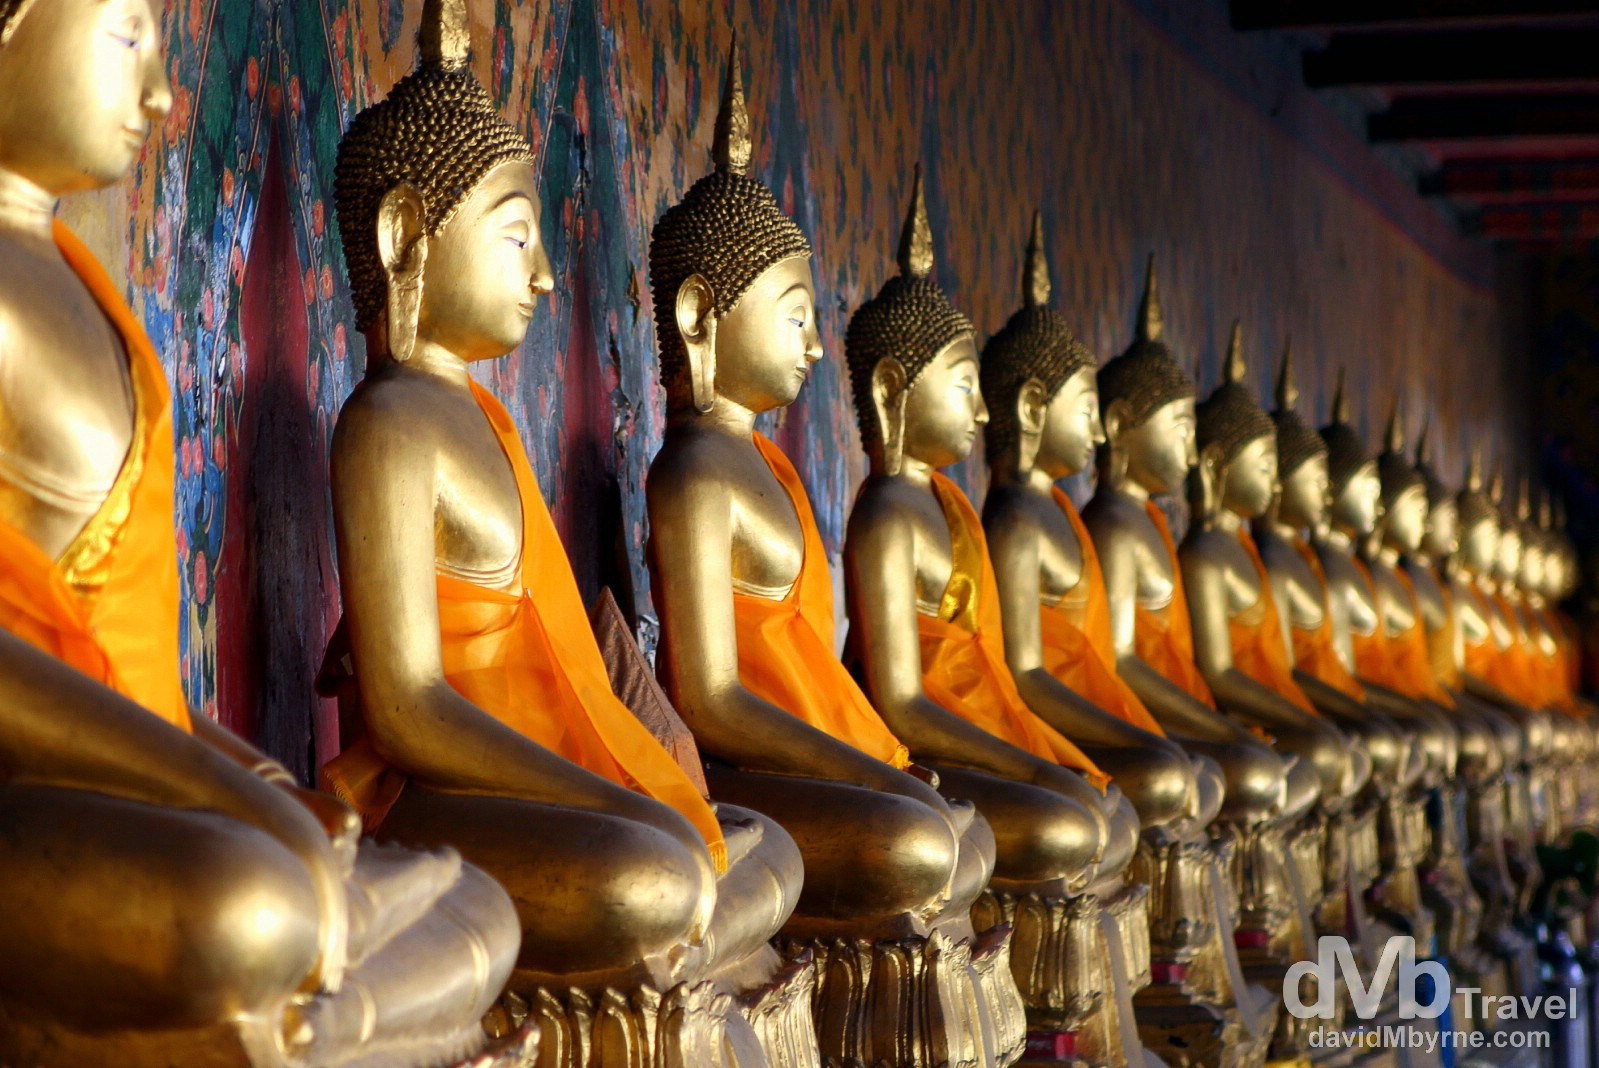 Buddhas in Wat Arun, Bangkok, Thailand. March 7th 2012.